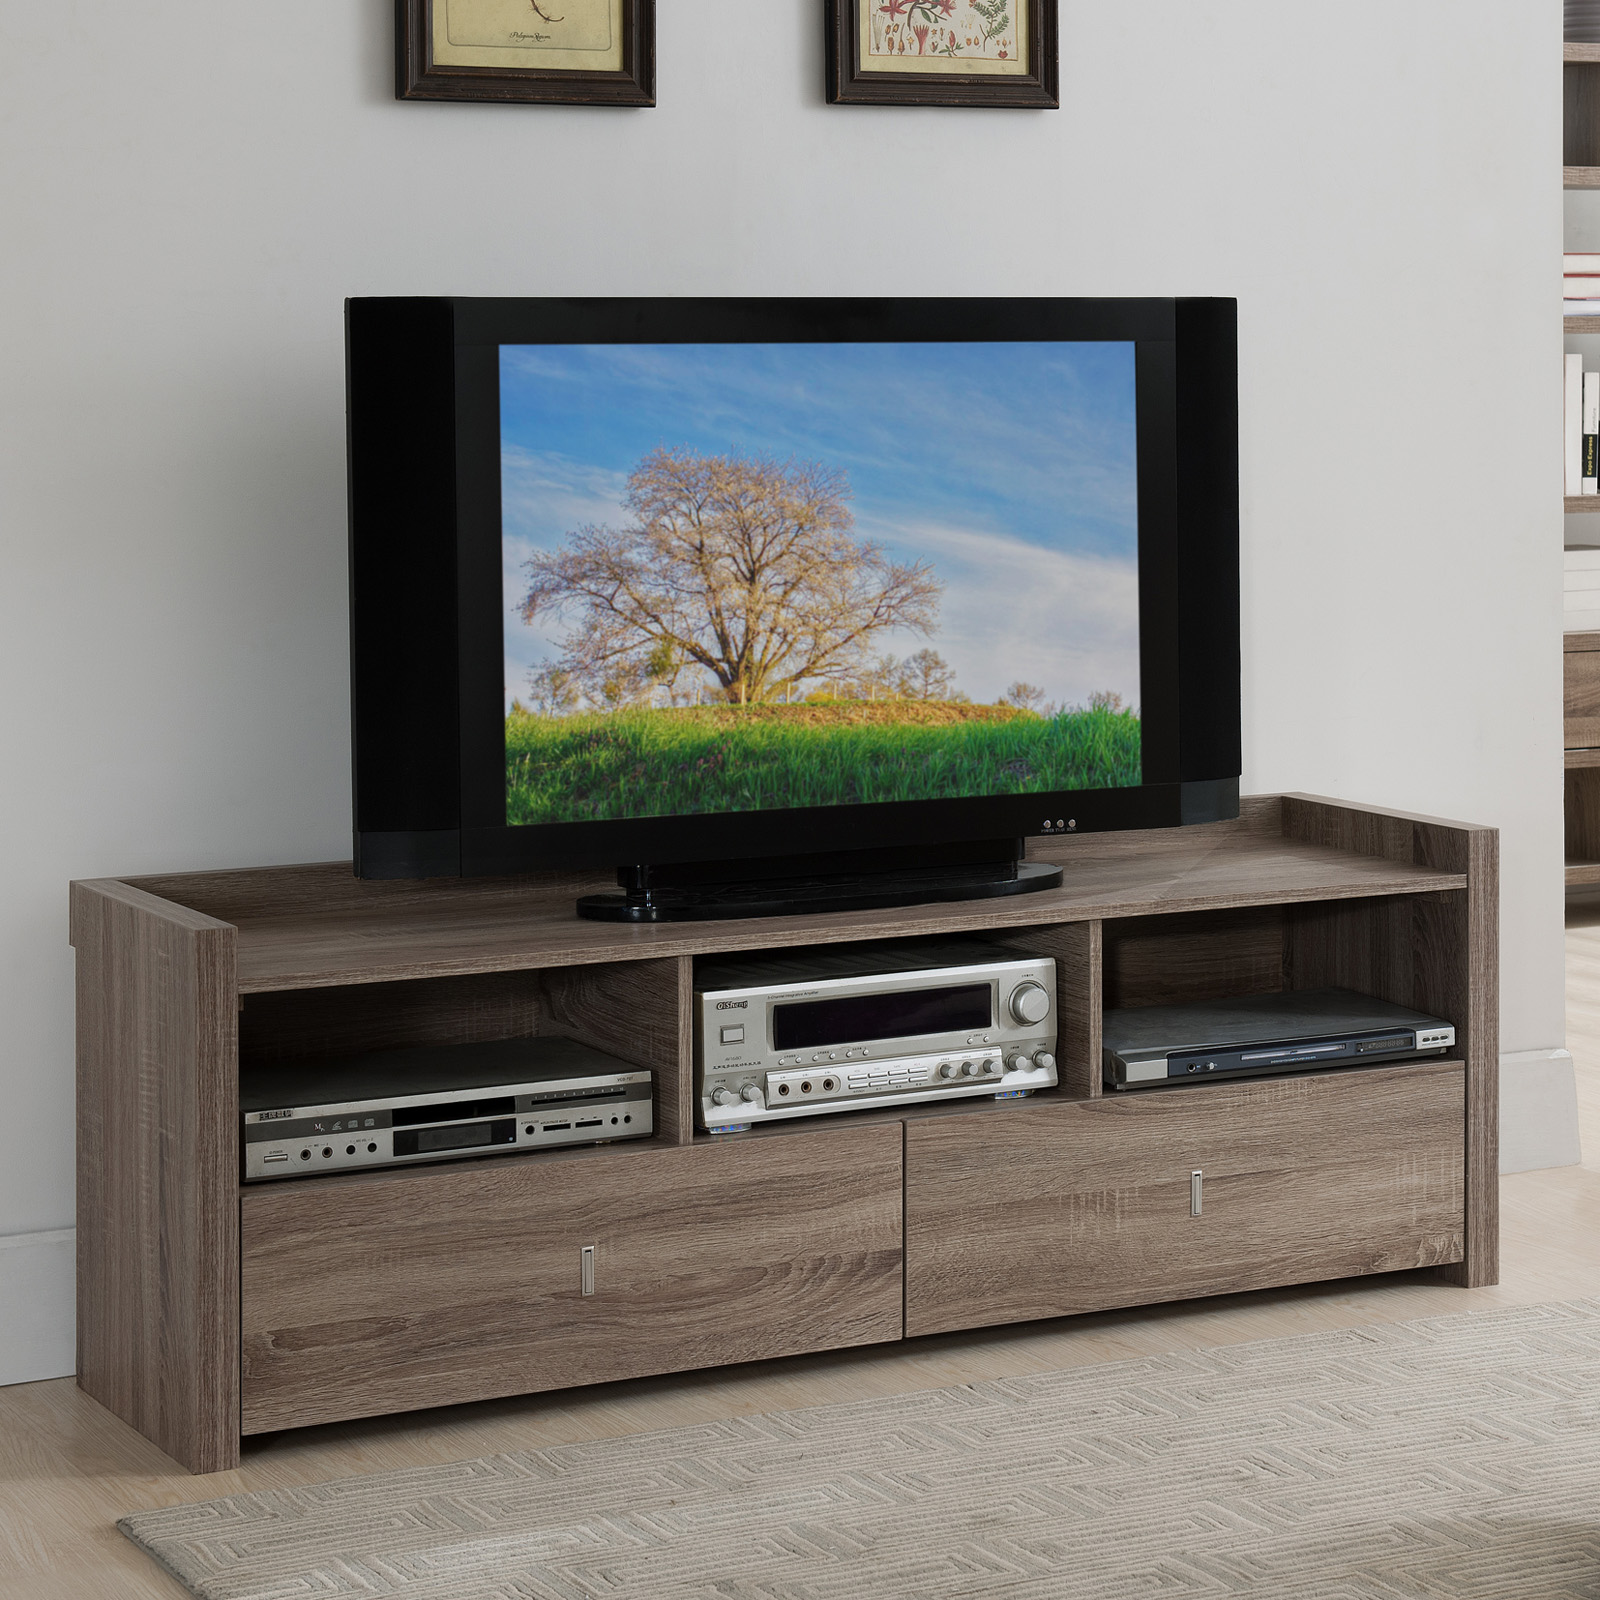 Furniture of America Helenza 60 in Vintage Walnut Entertainment